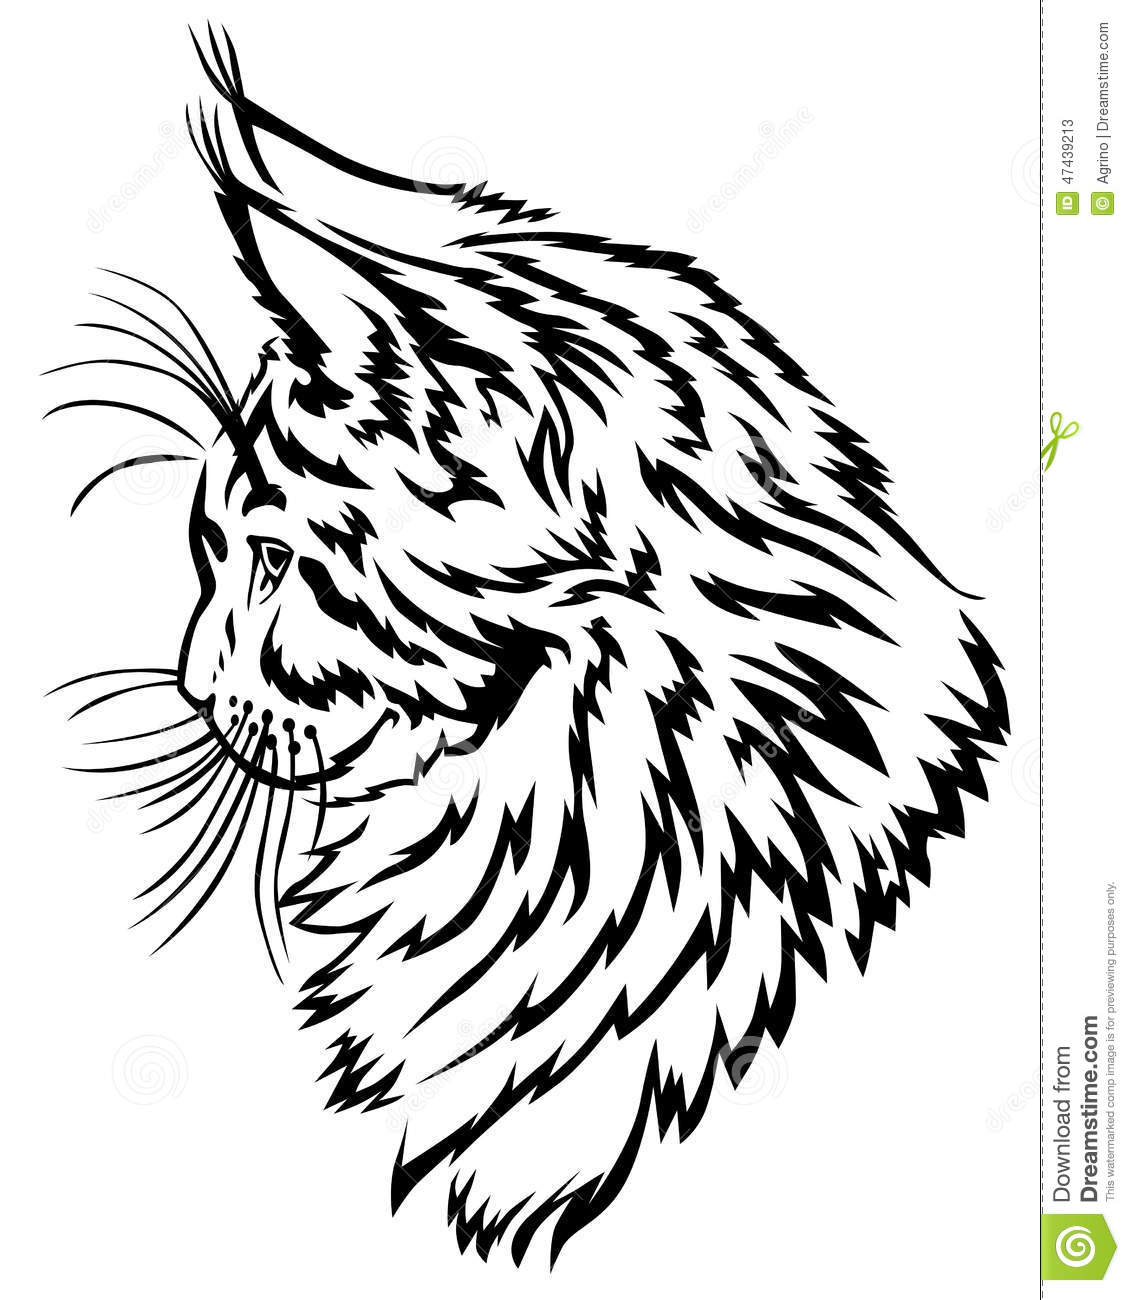 Contour Line Drawing Of A Cat : Maine coon kitten profile stock vector image